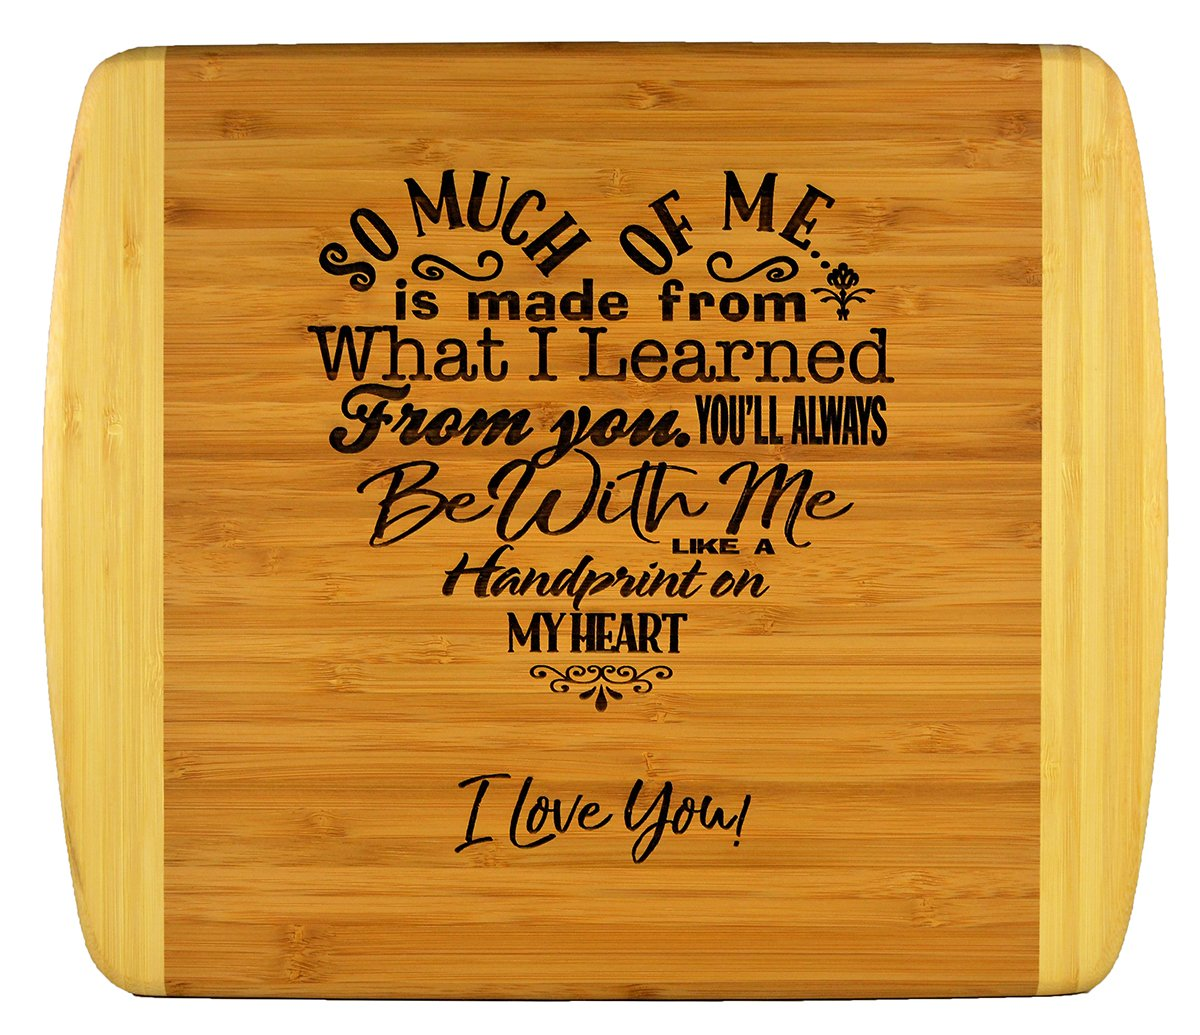 Mothers Gift – Special Love Heart Poem Bamboo Cutting Board Design Mom Gift Mothers Day Gift Mom Birthday Christmas Gift Engraved Side For Décor Hanging Reverse Side For Usage (11.5x13.5 Rectangle)